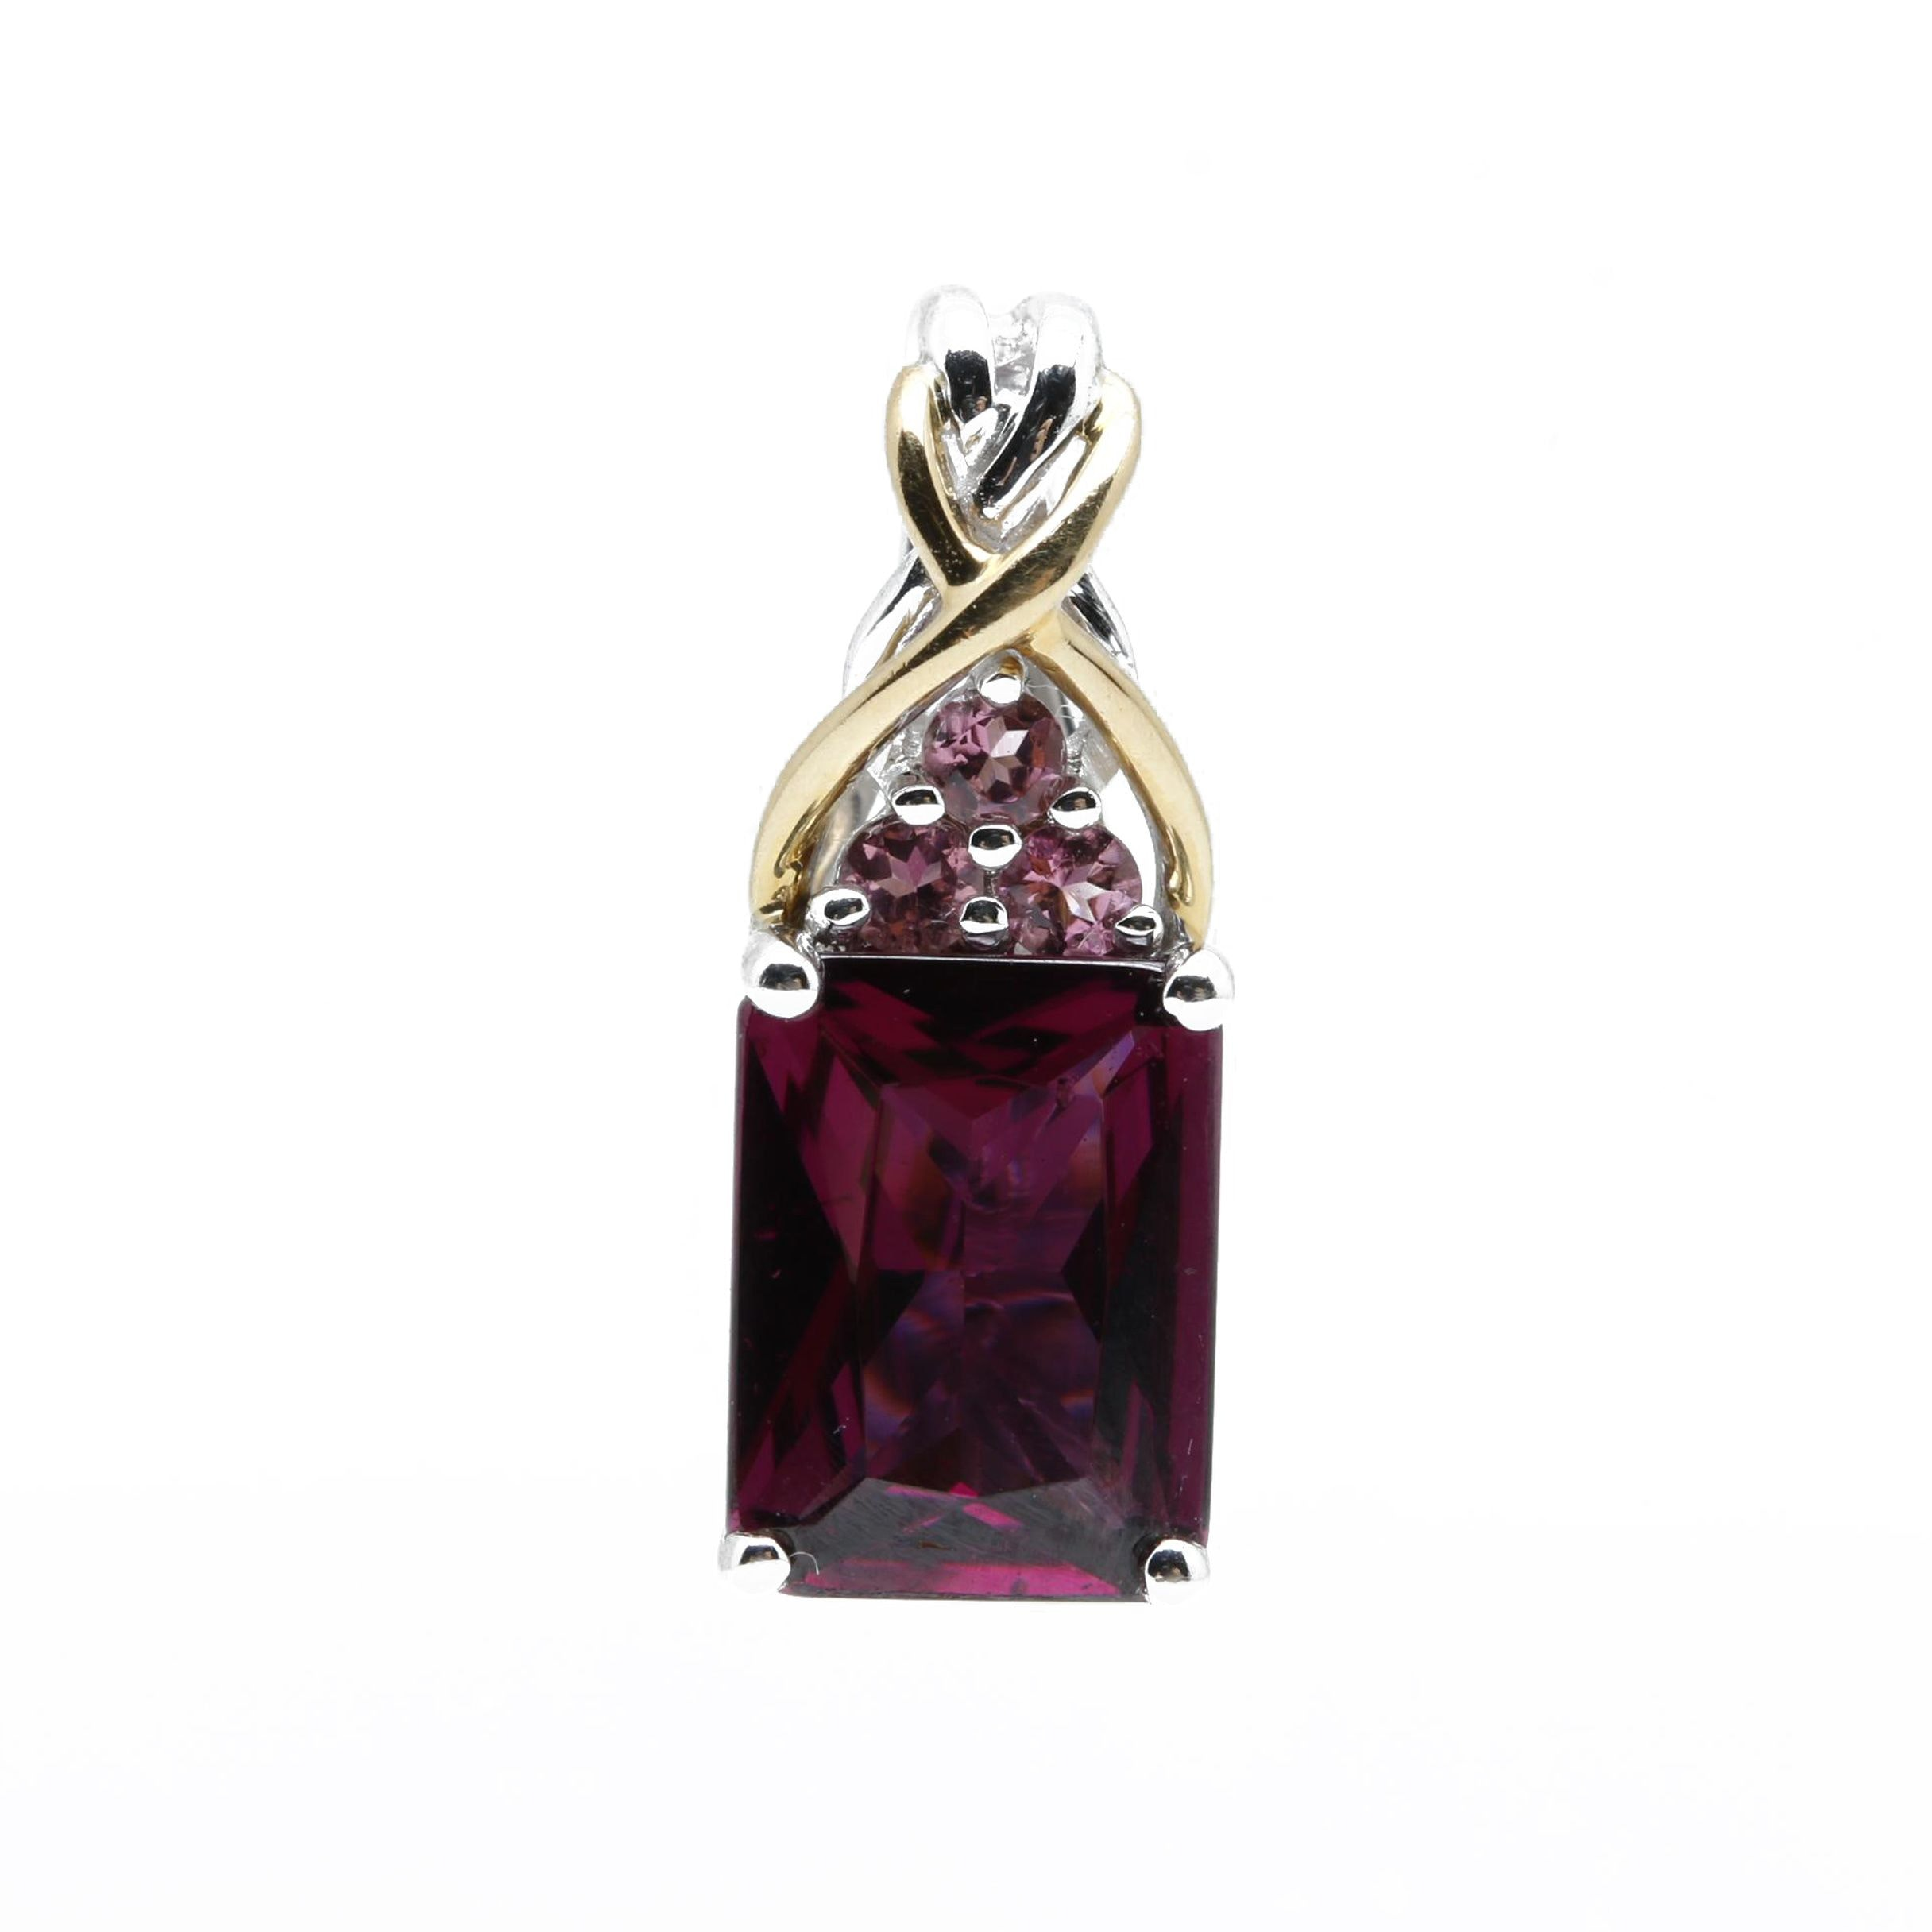 18K White Gold Rhodolite Garnet Pendant with 18K Yellow Gold Accents